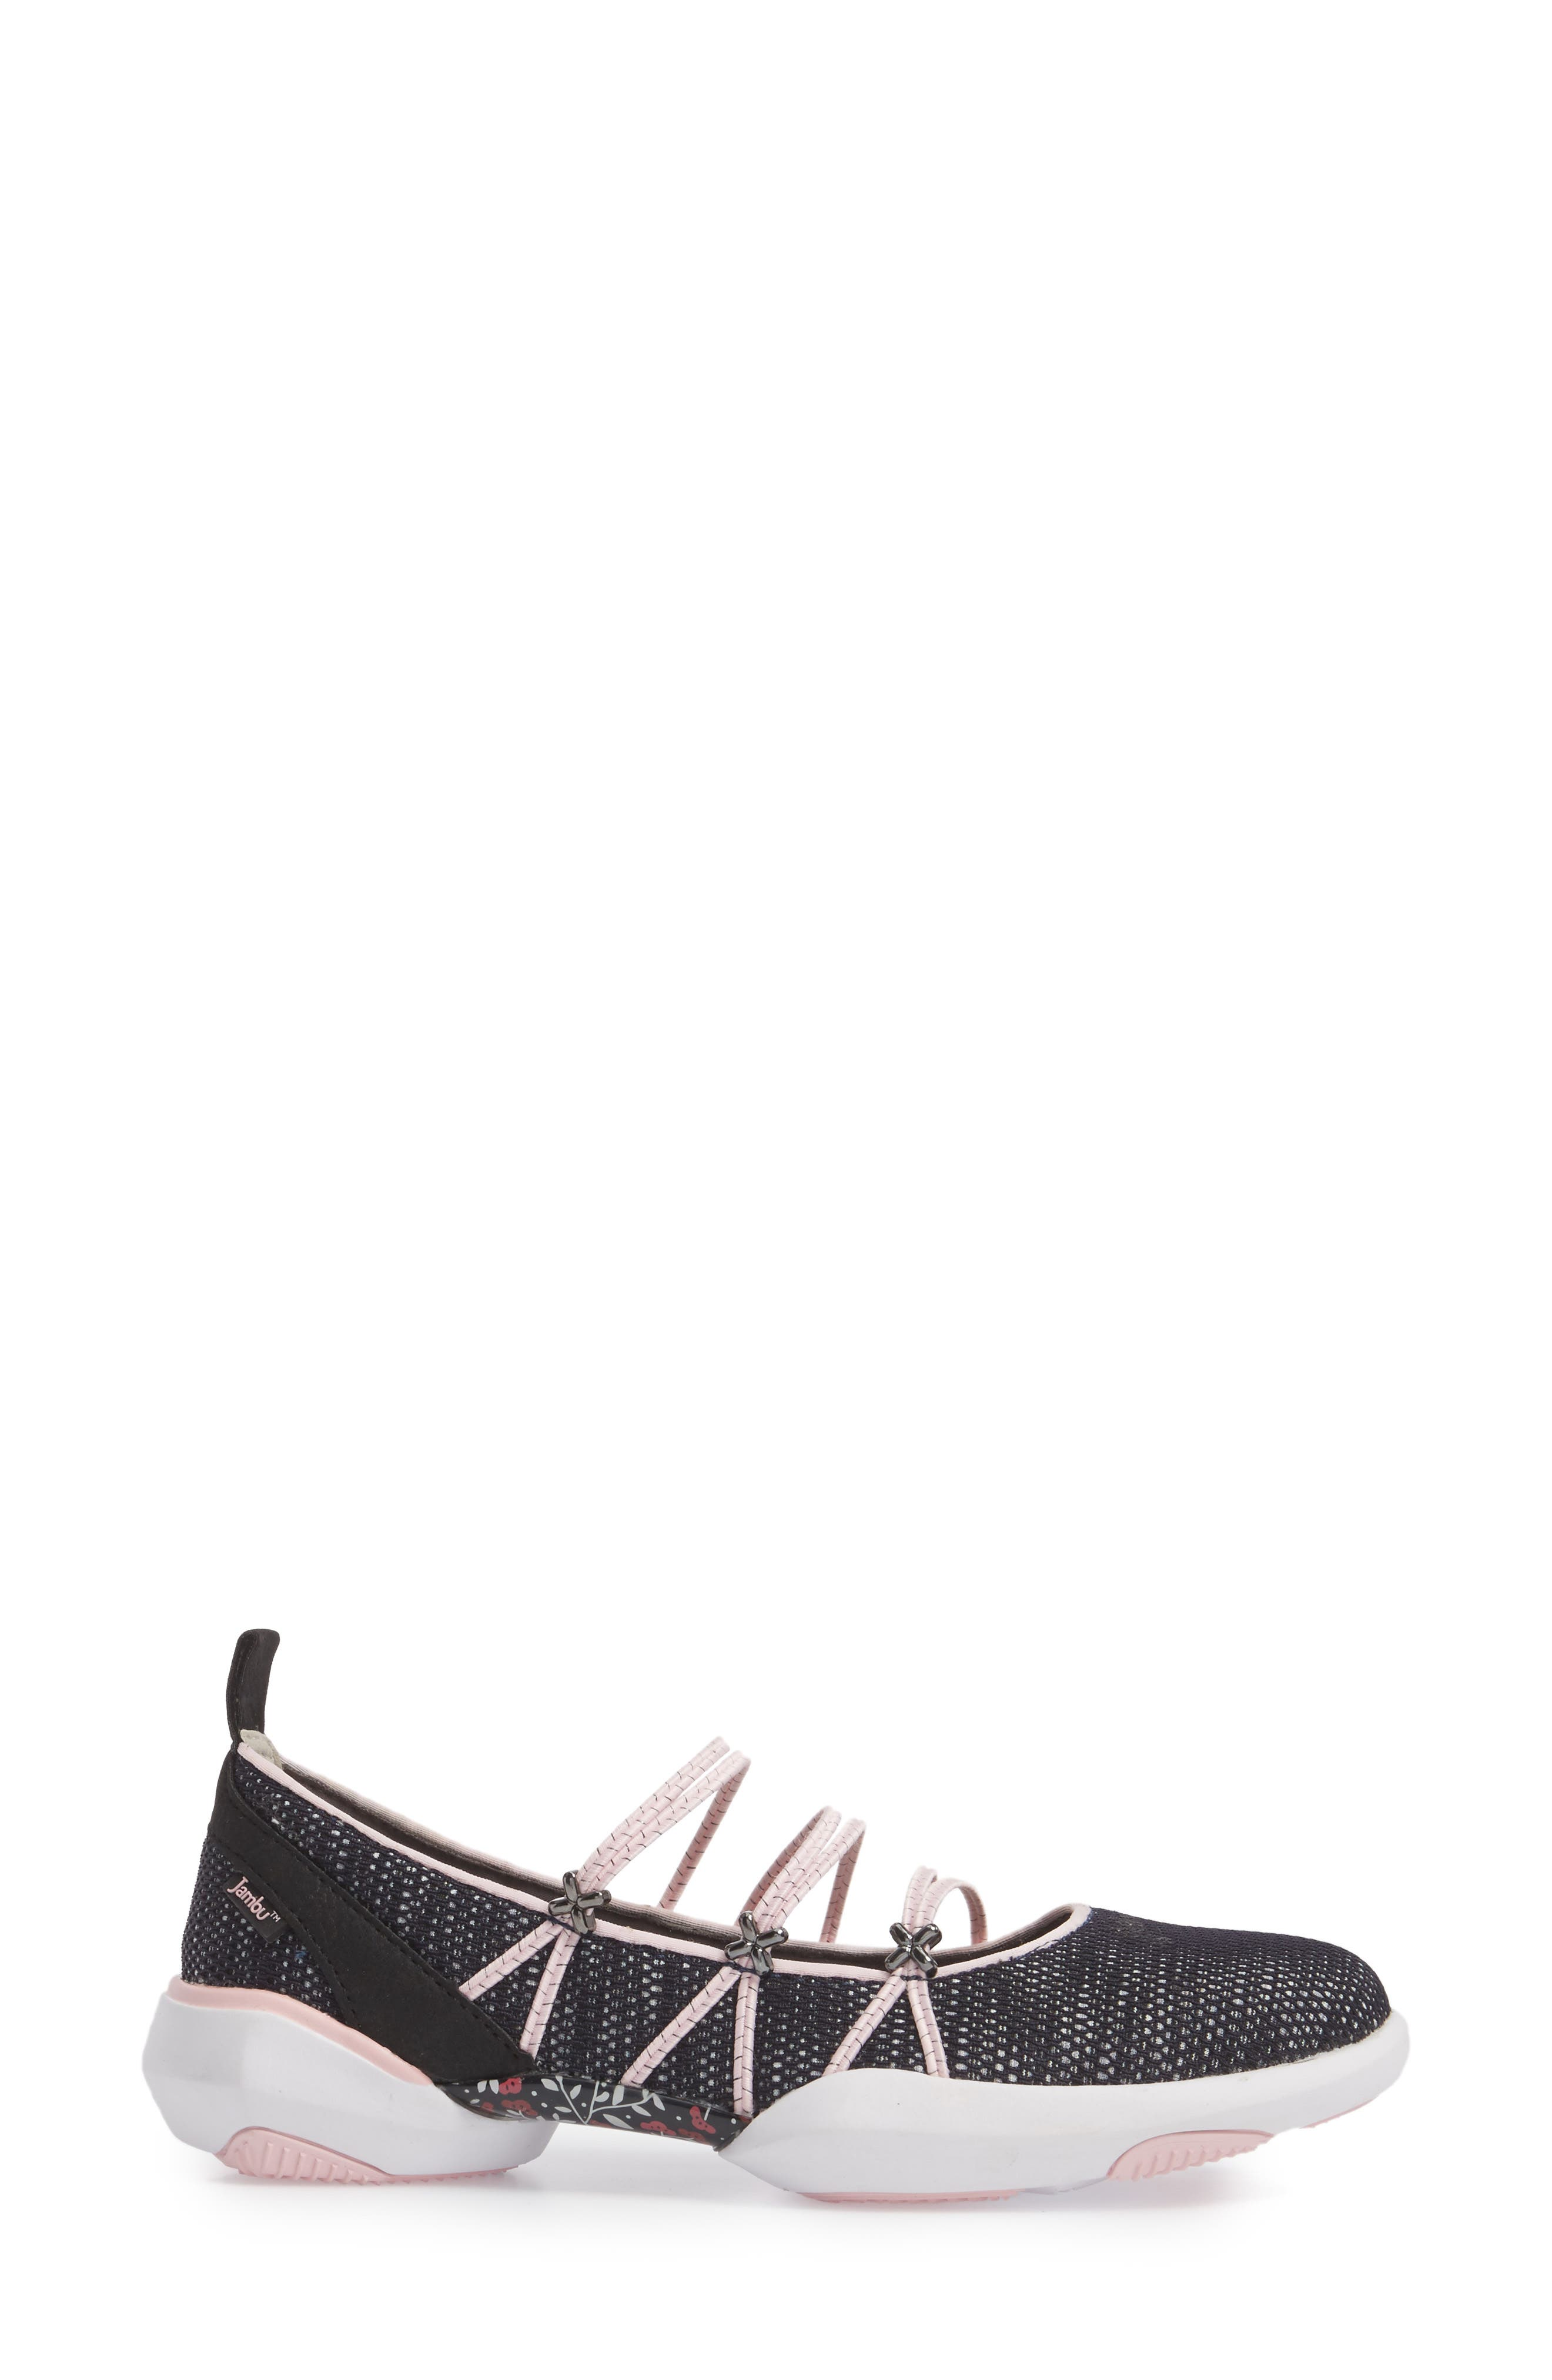 Cheyenne Water Ready Slip-on,                             Alternate thumbnail 3, color,                             NAVY